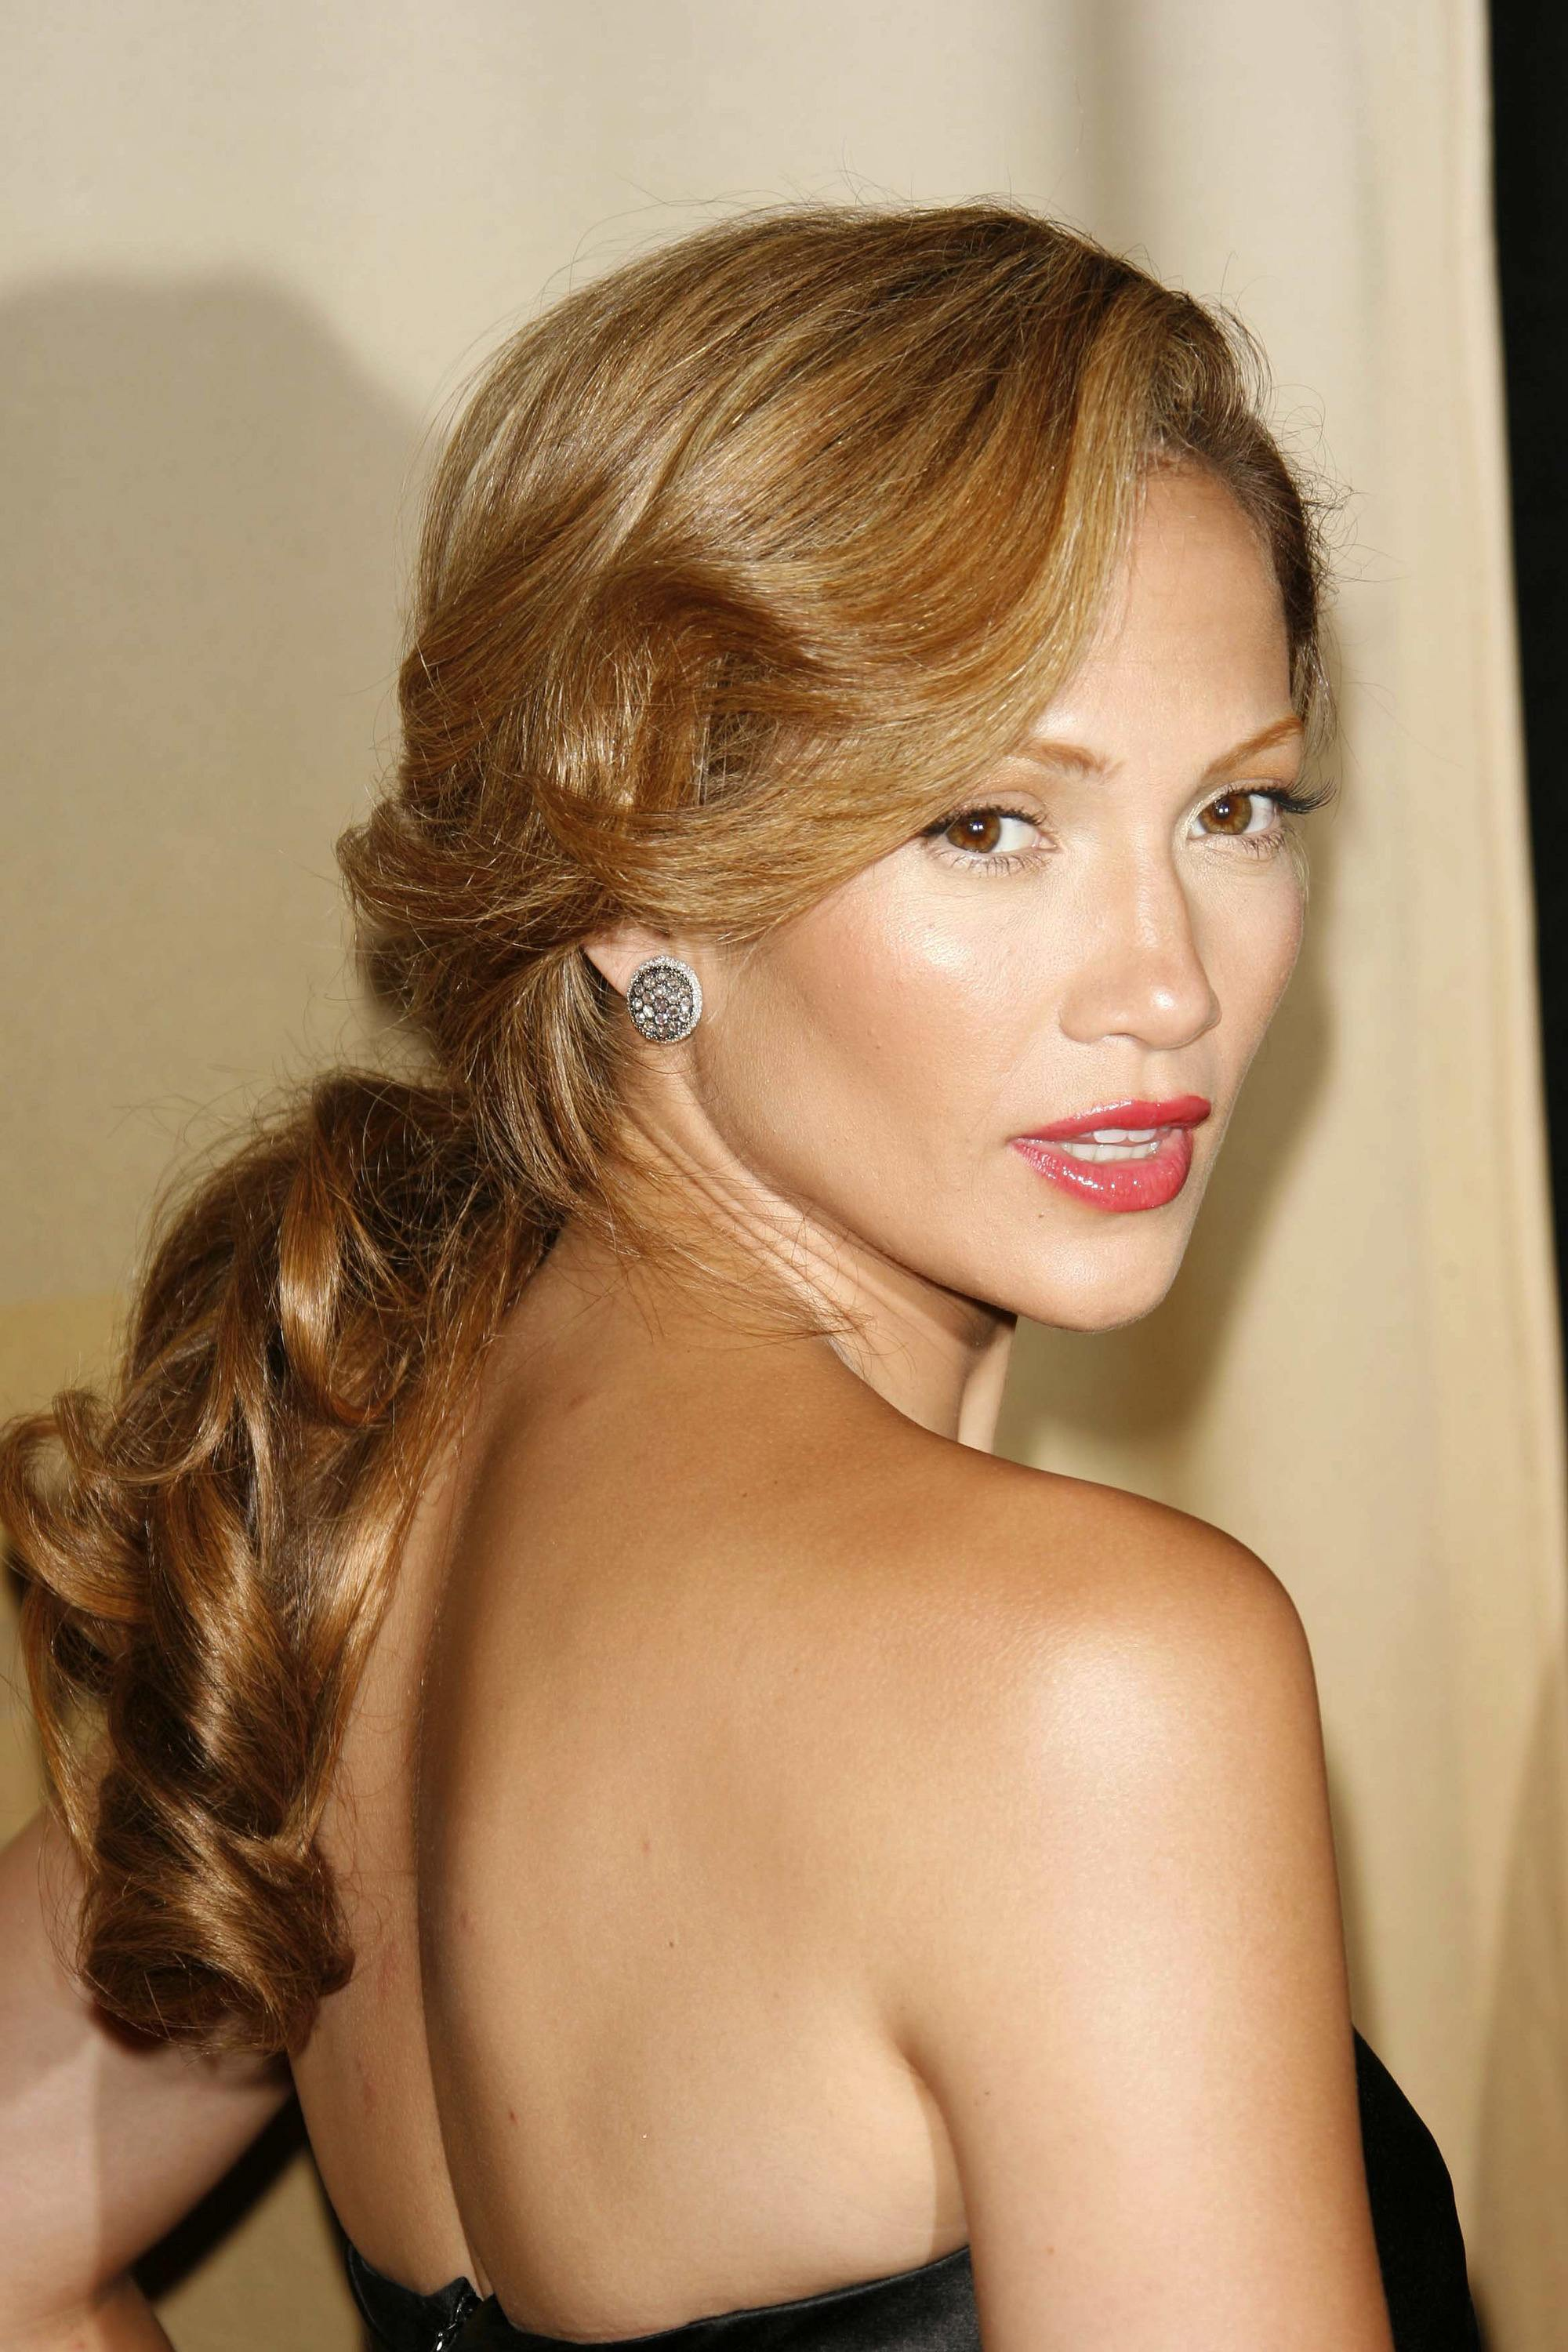 Jennifer Lopez - 2006 - mane moments - golden brown hair in low ponytail